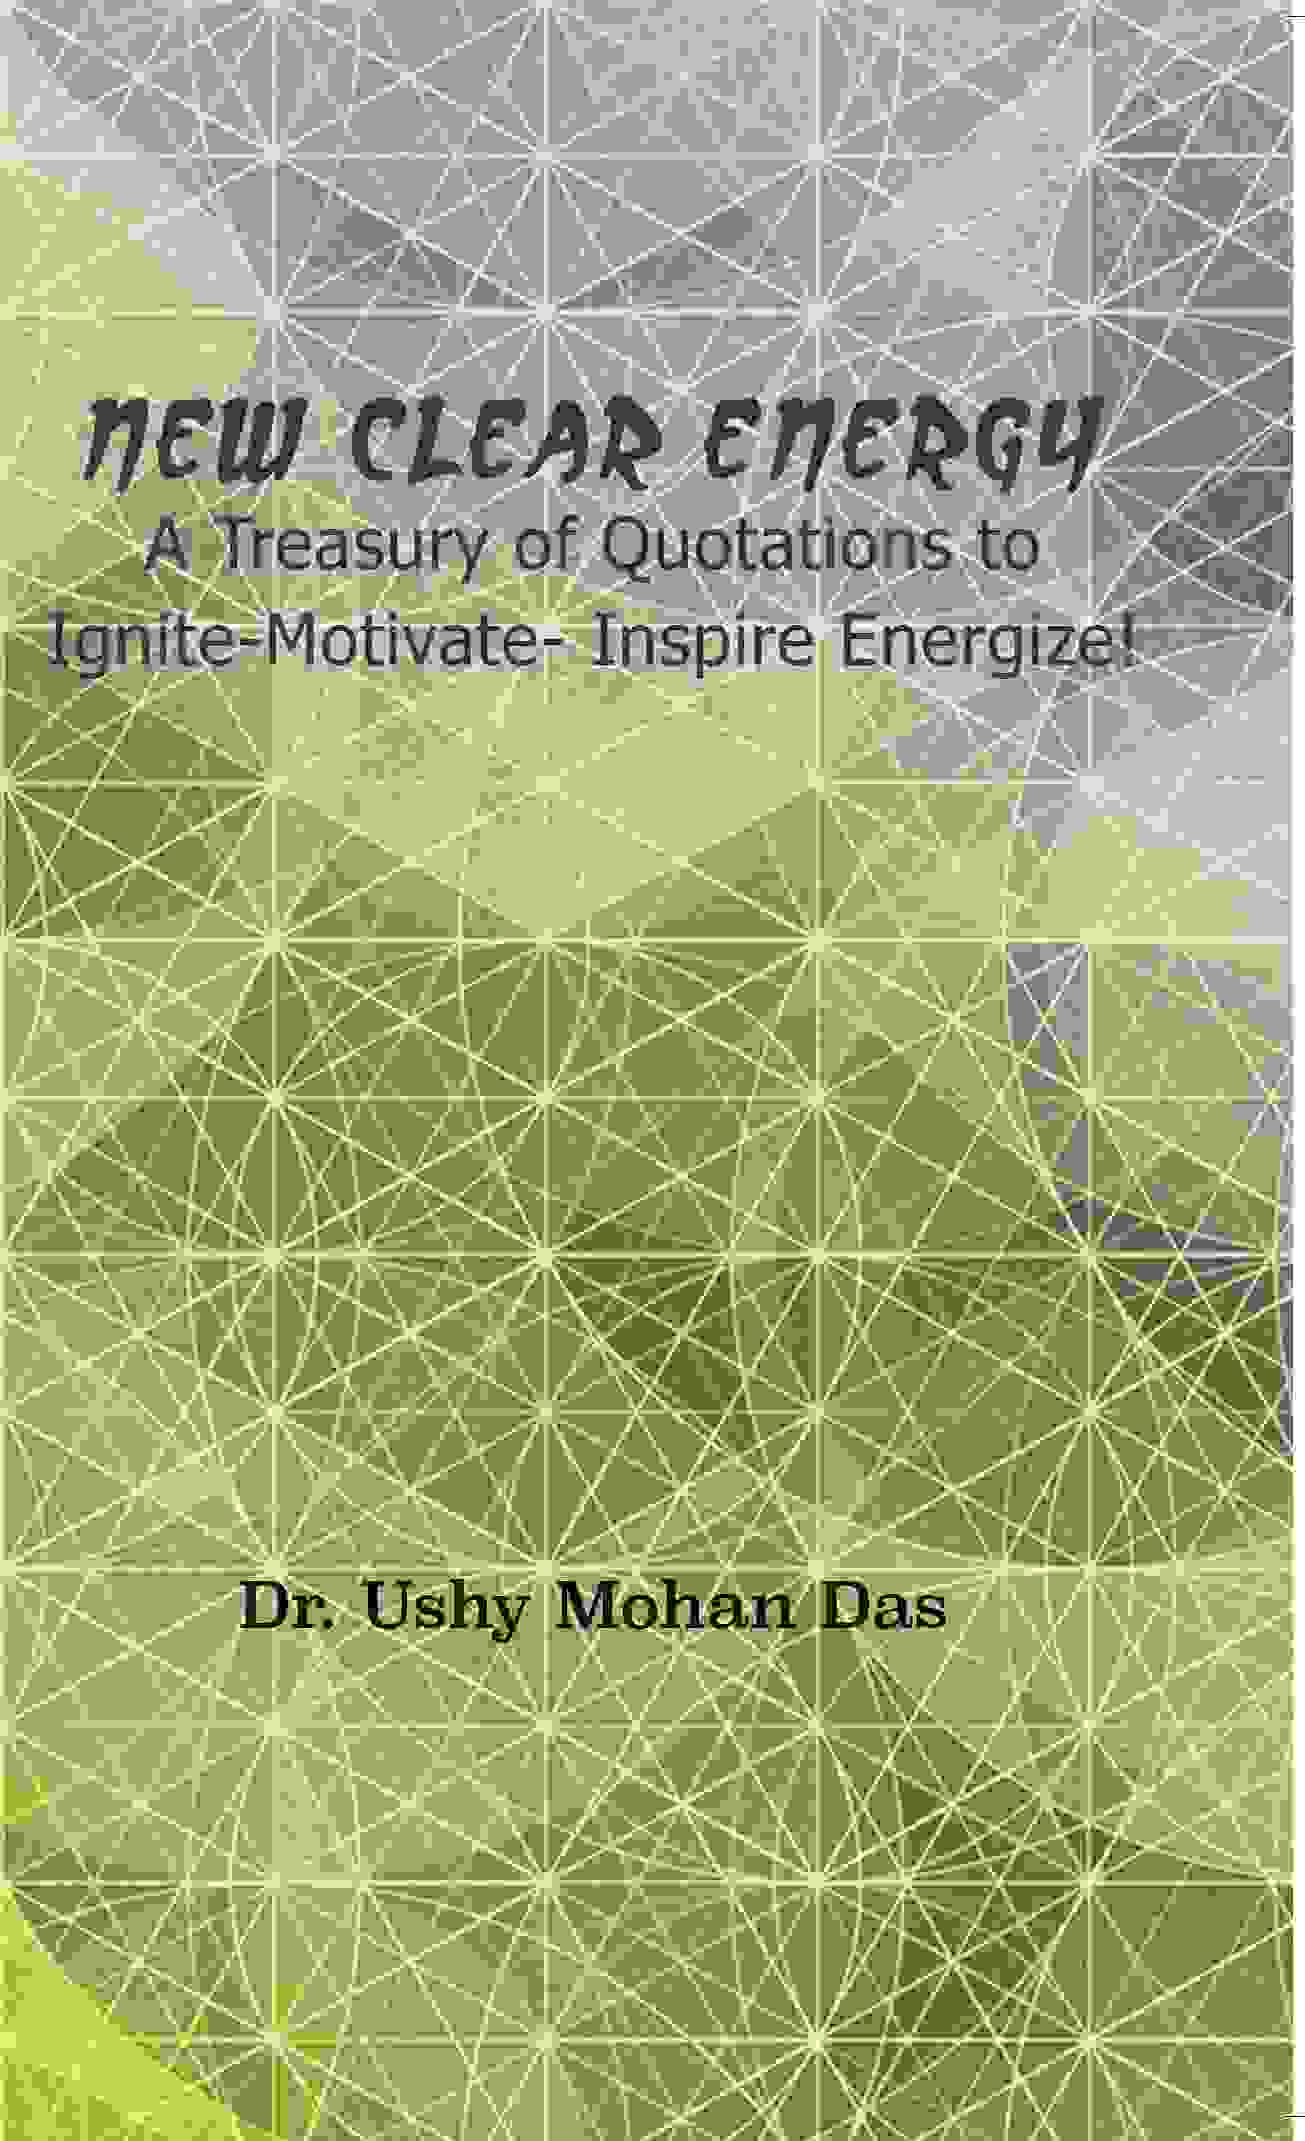 New Clear Energy - A Treasury Of Quotations To Ignite-Motivate- Inspire Energize! - E Book